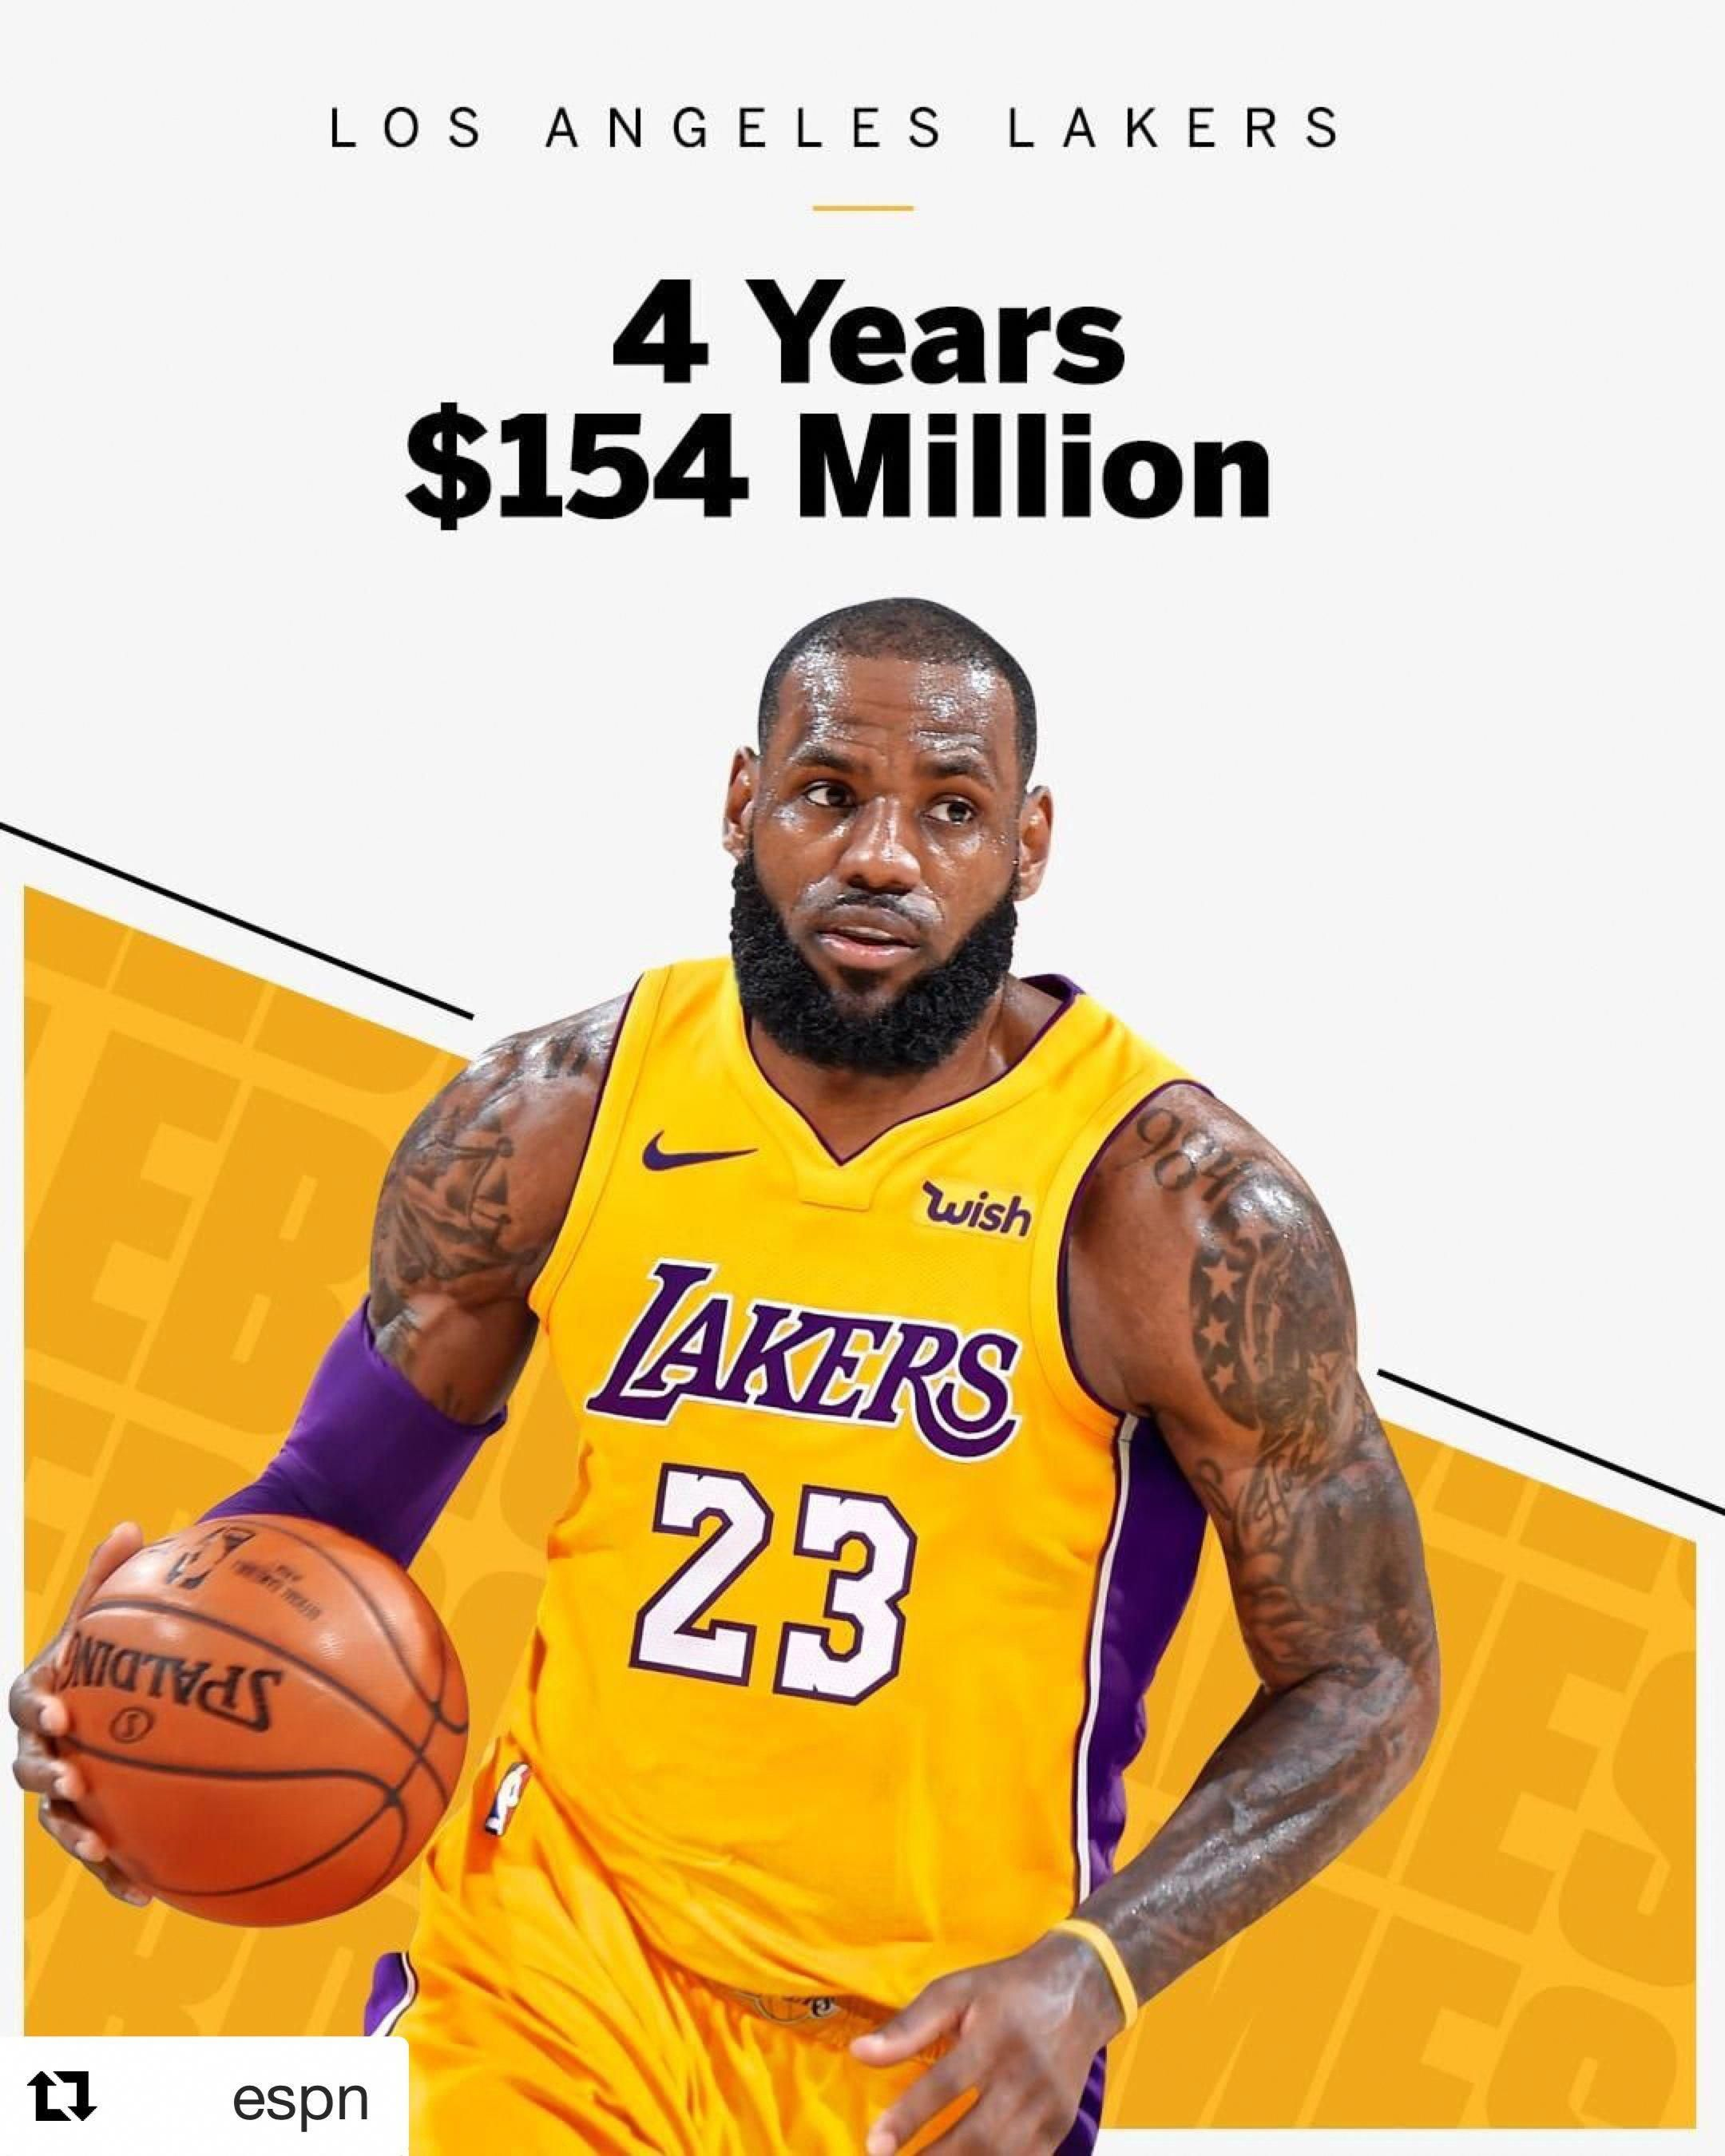 a44a6c4e293 LeBron James signed with the LA LAKERS  probasketball  basketballrules